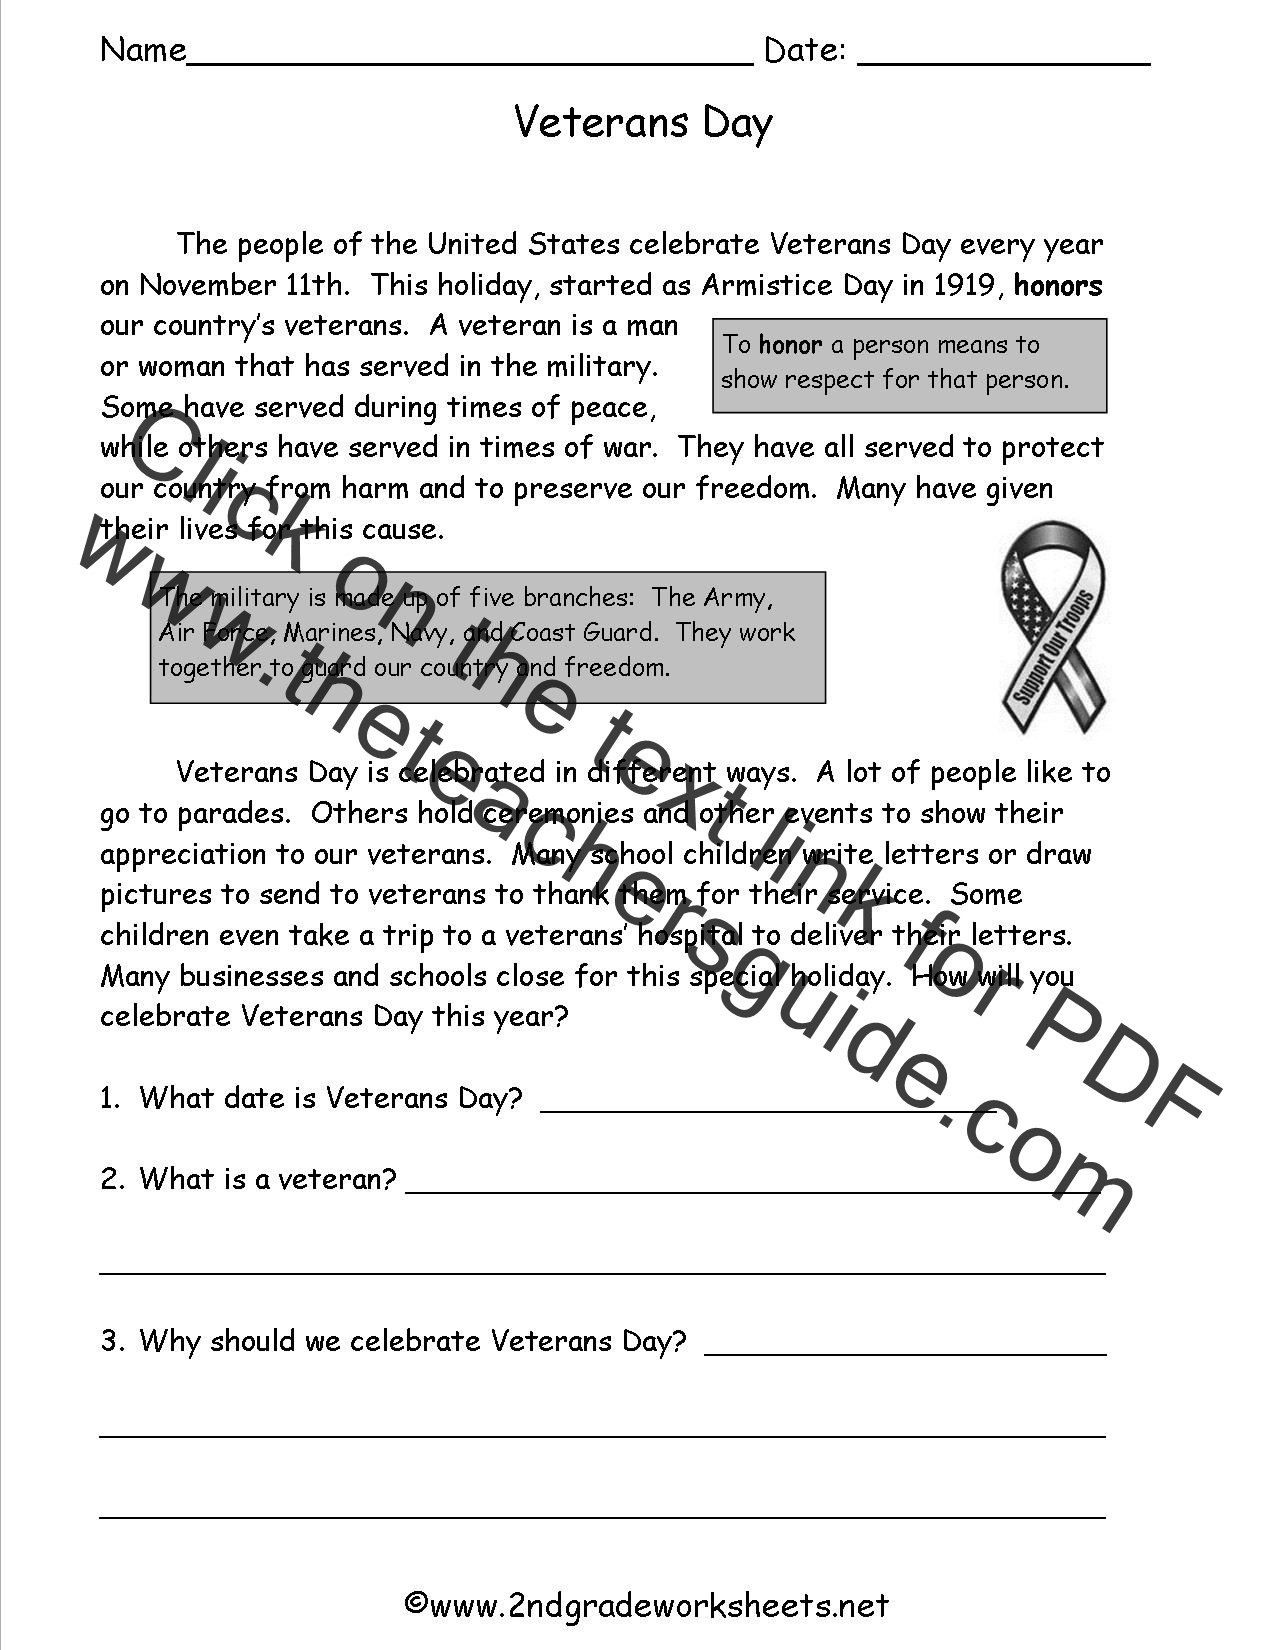 veterans day worksheets